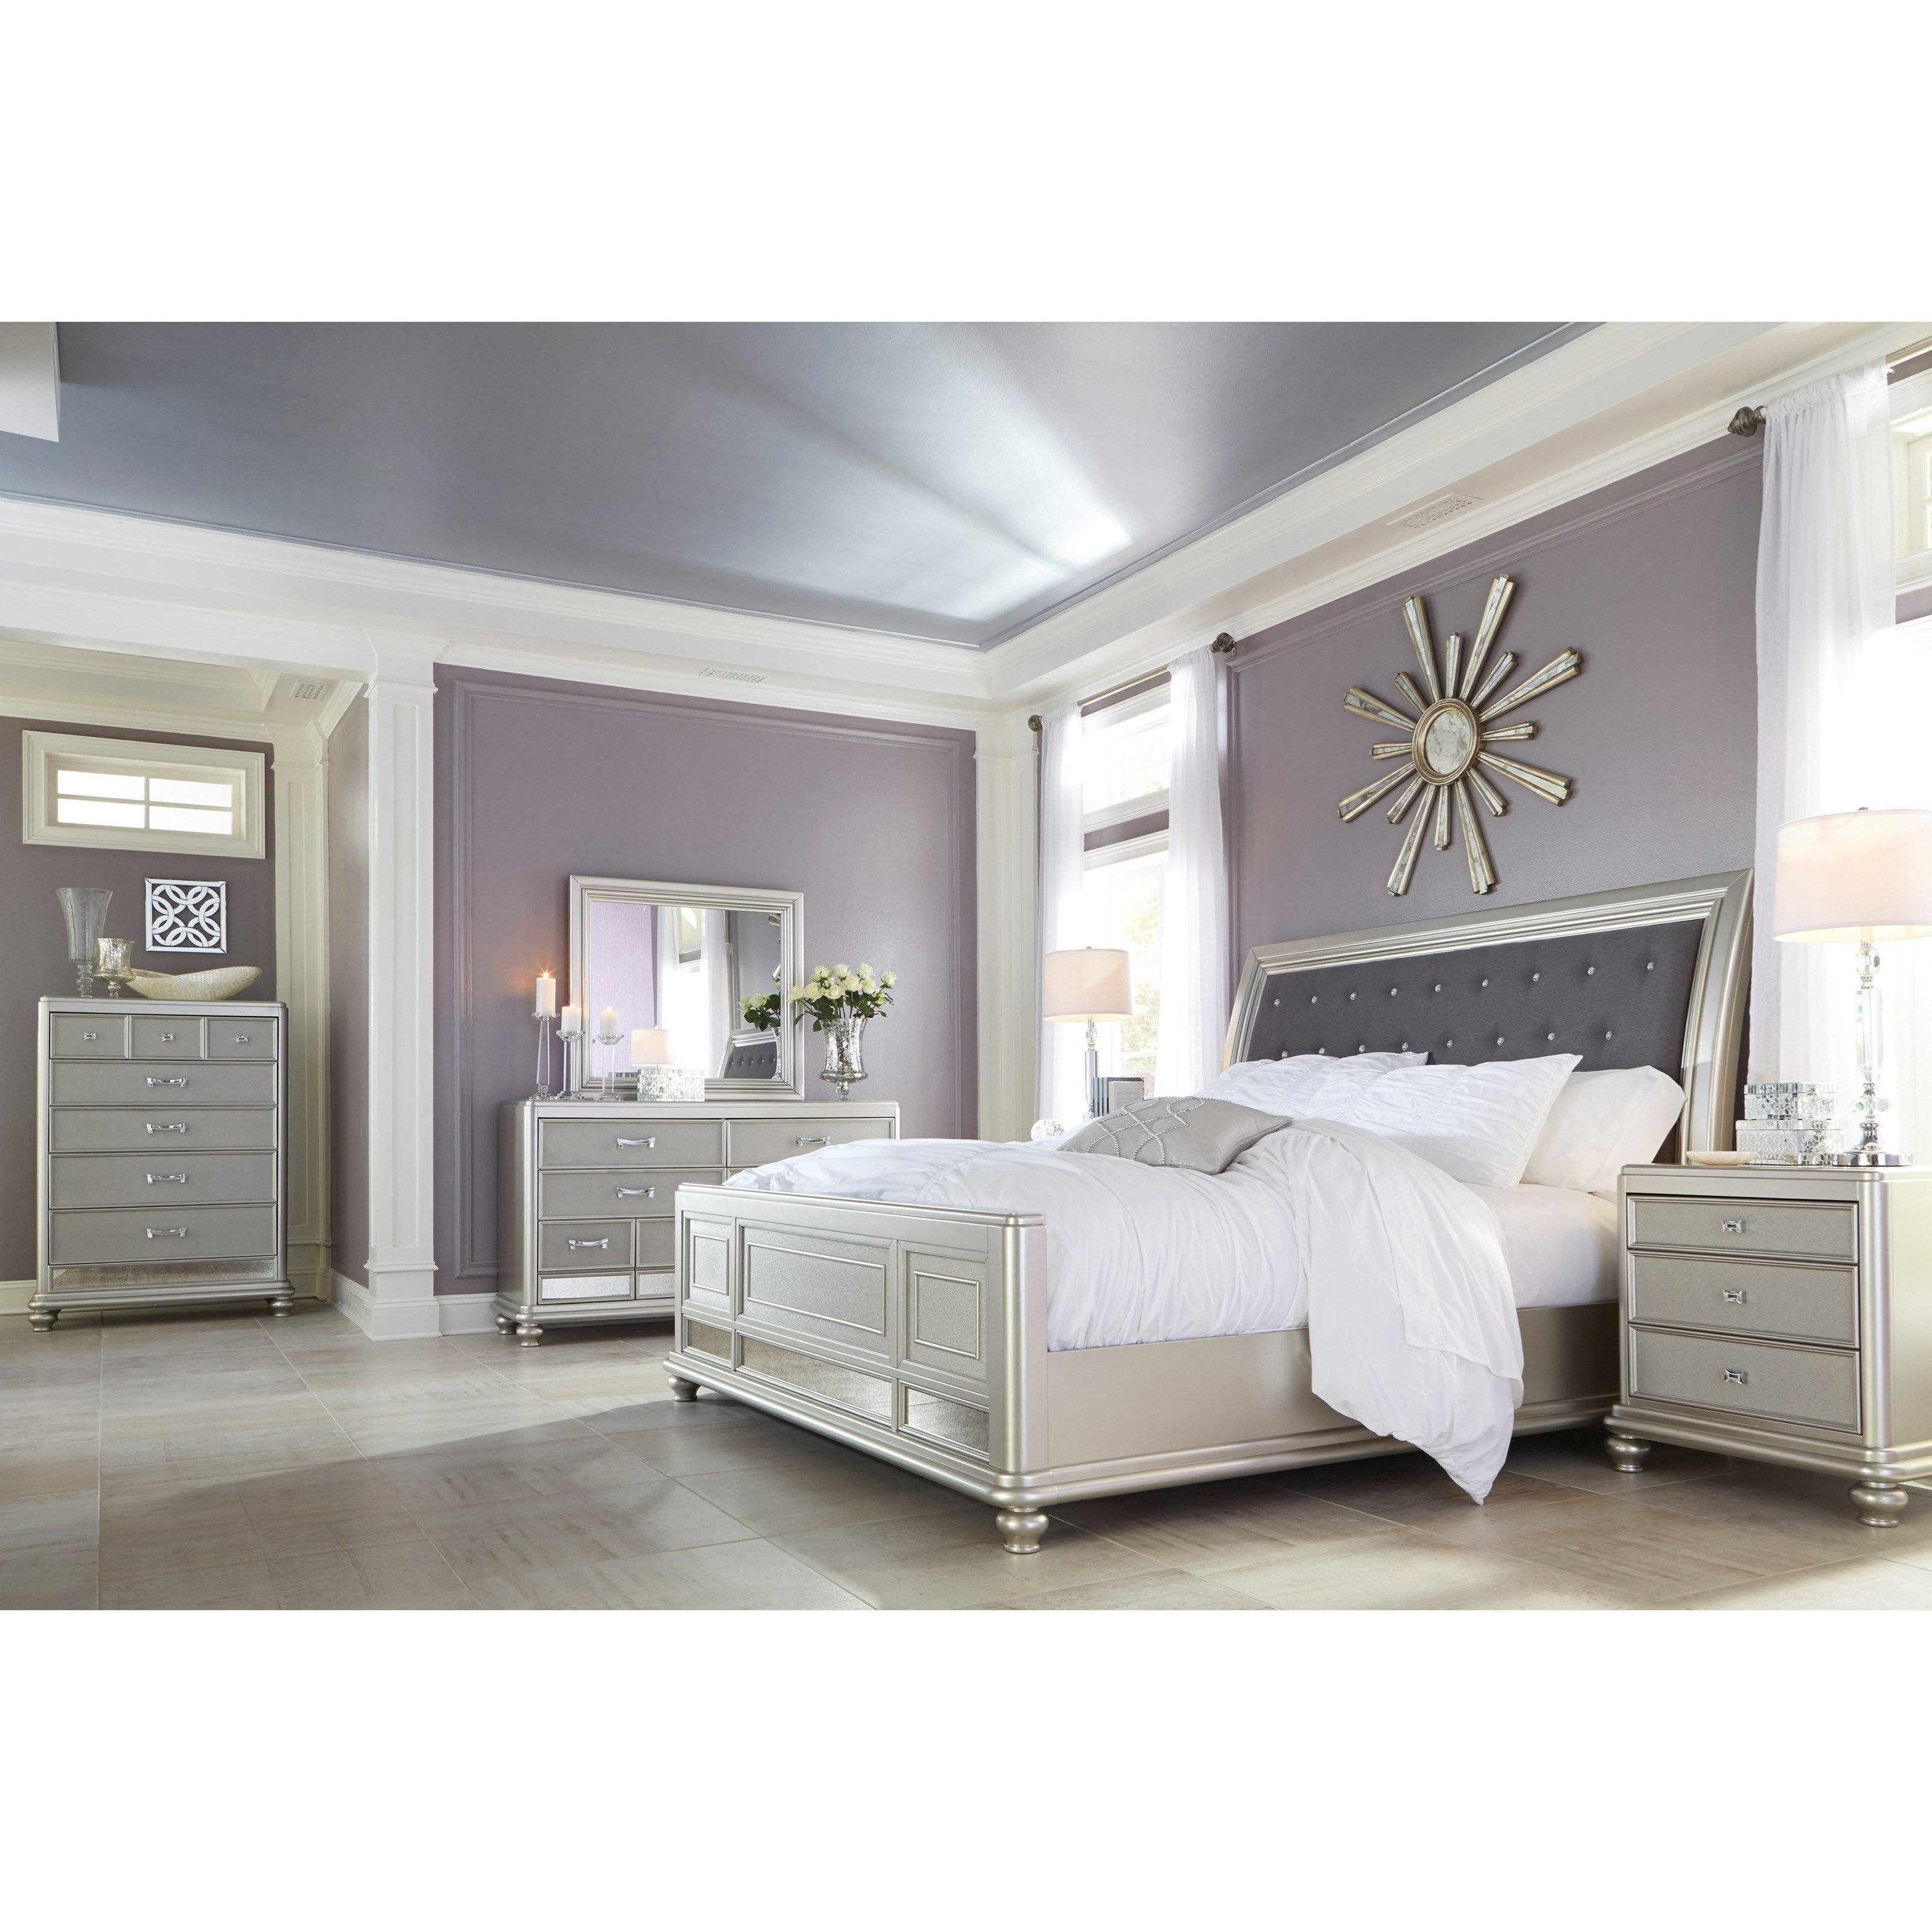 Ashley Furniture Silver Bedroom Set Inspirational Coralayne King Bedroom Group by Signature Design by ashley